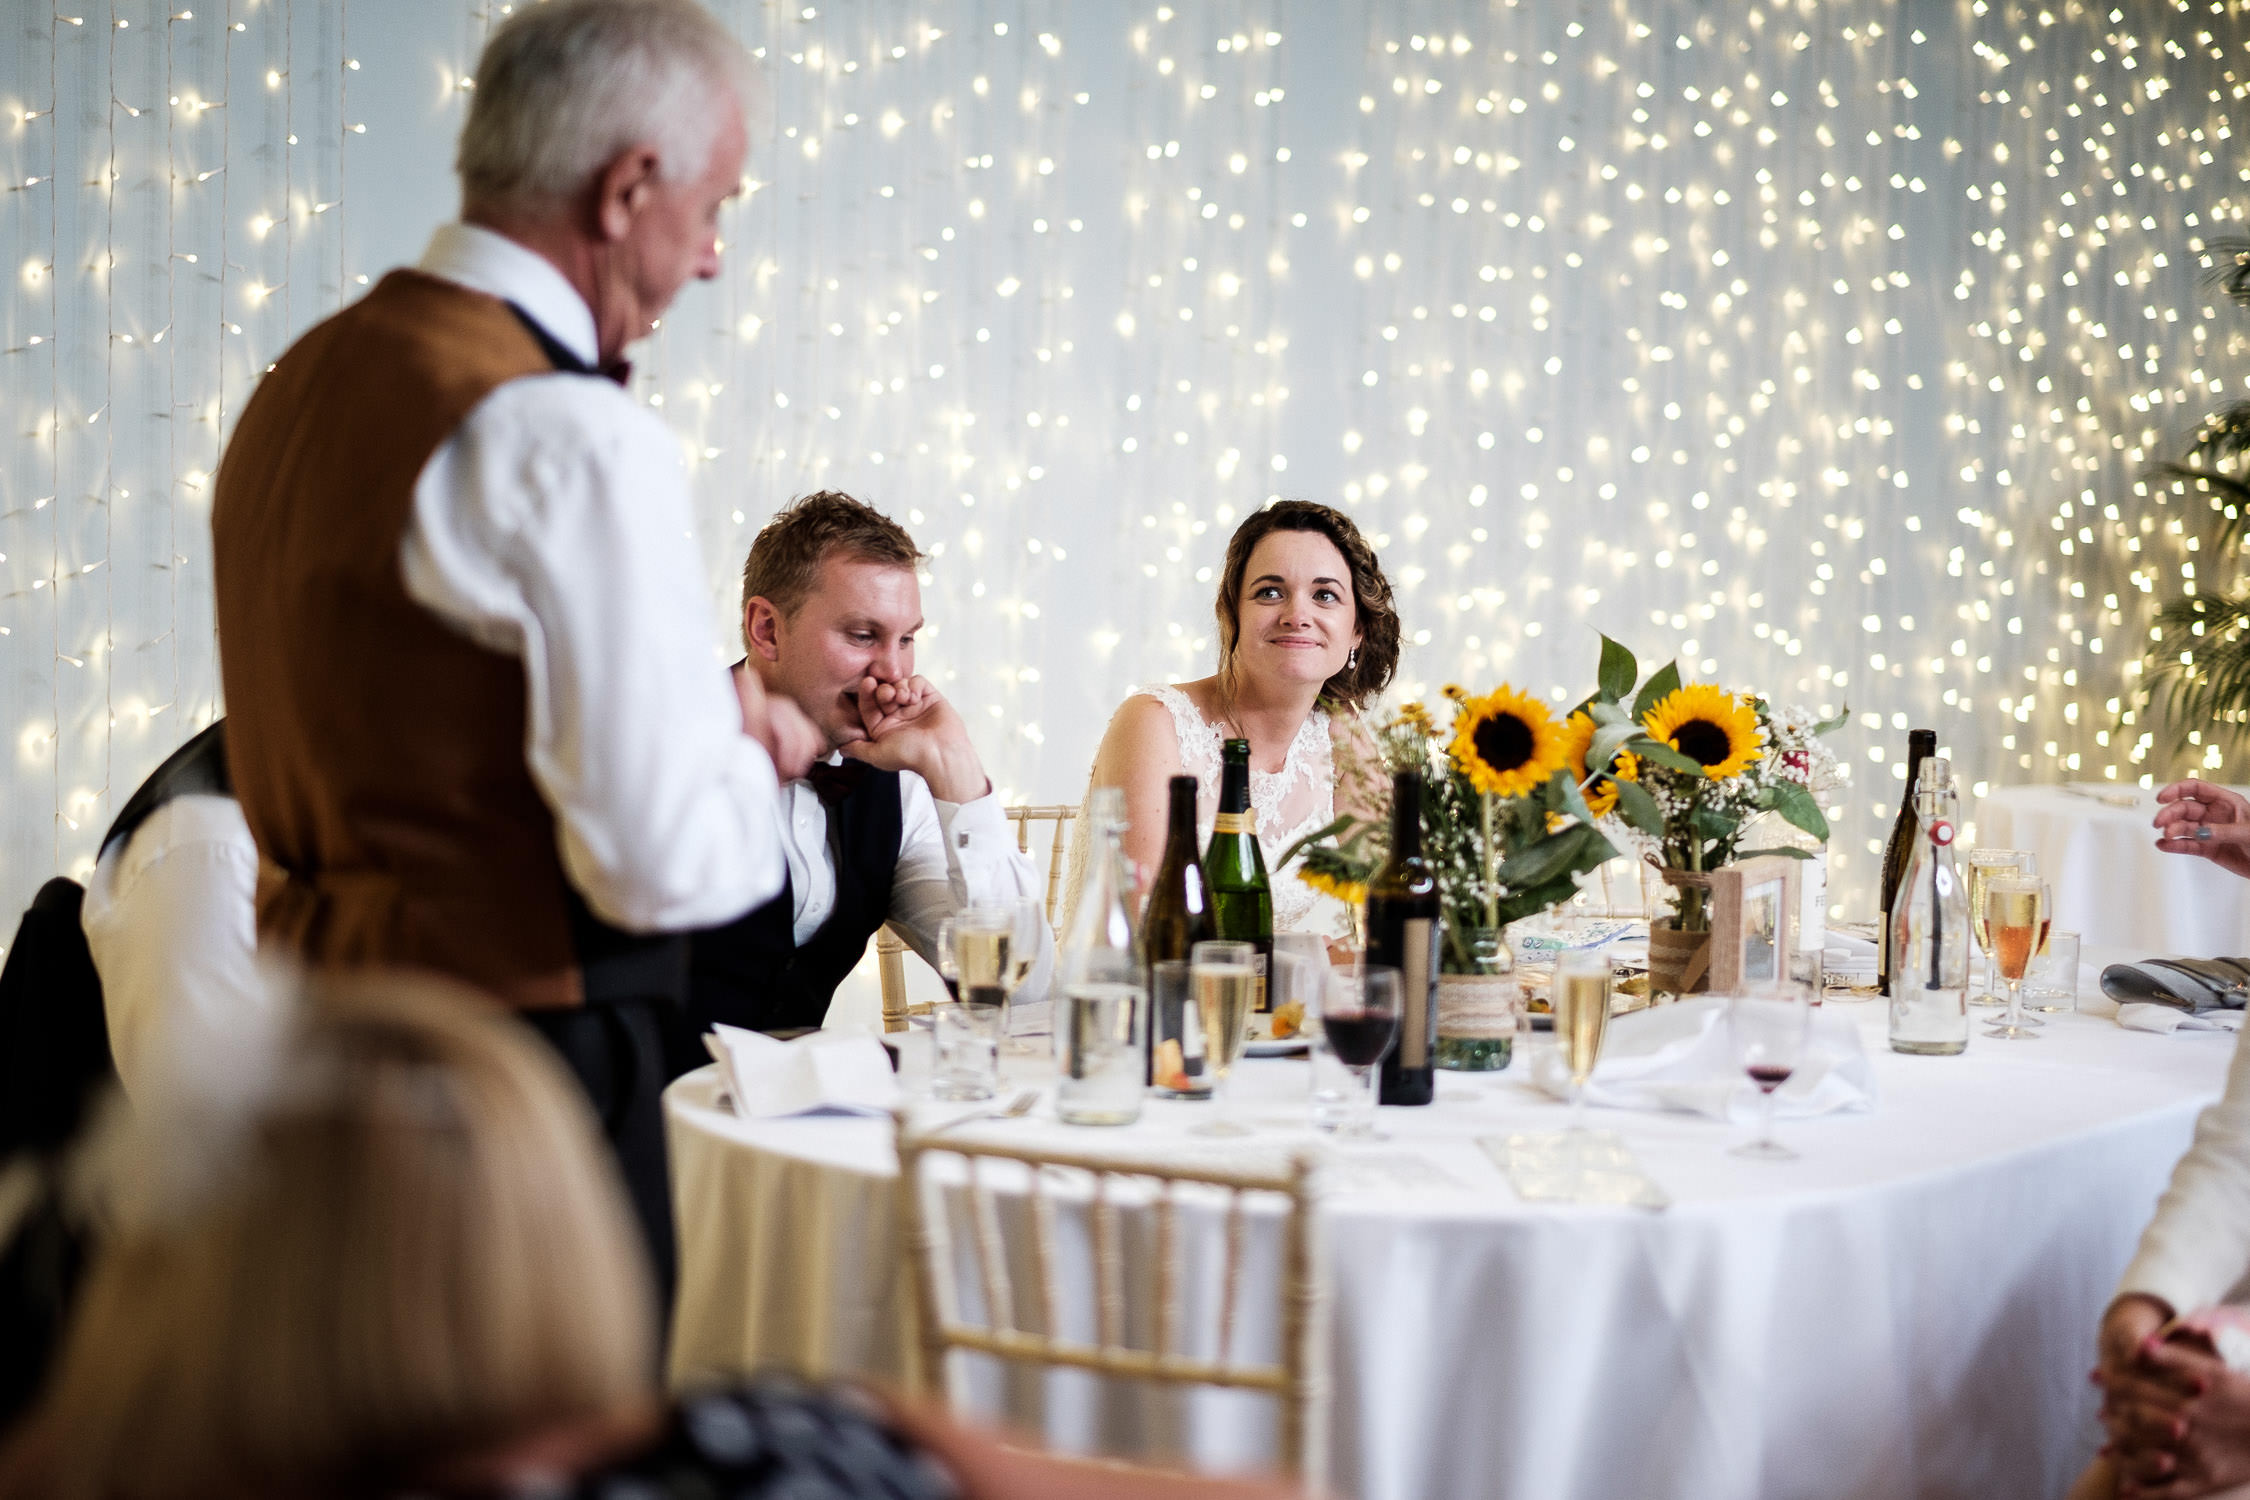 father of bride gives speech with bride looking at him